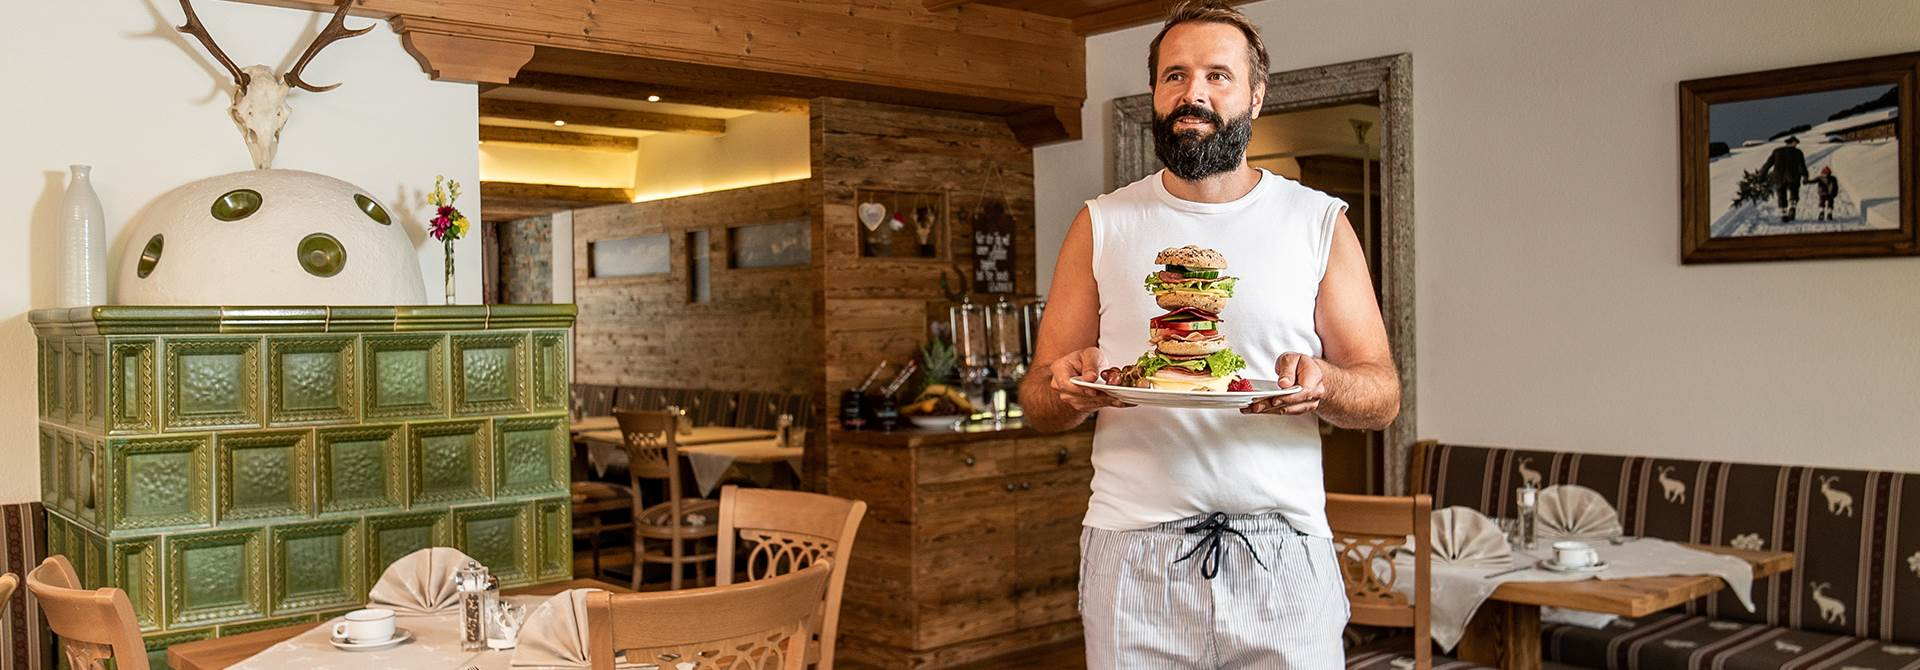 Man goes through inn with burger on plate